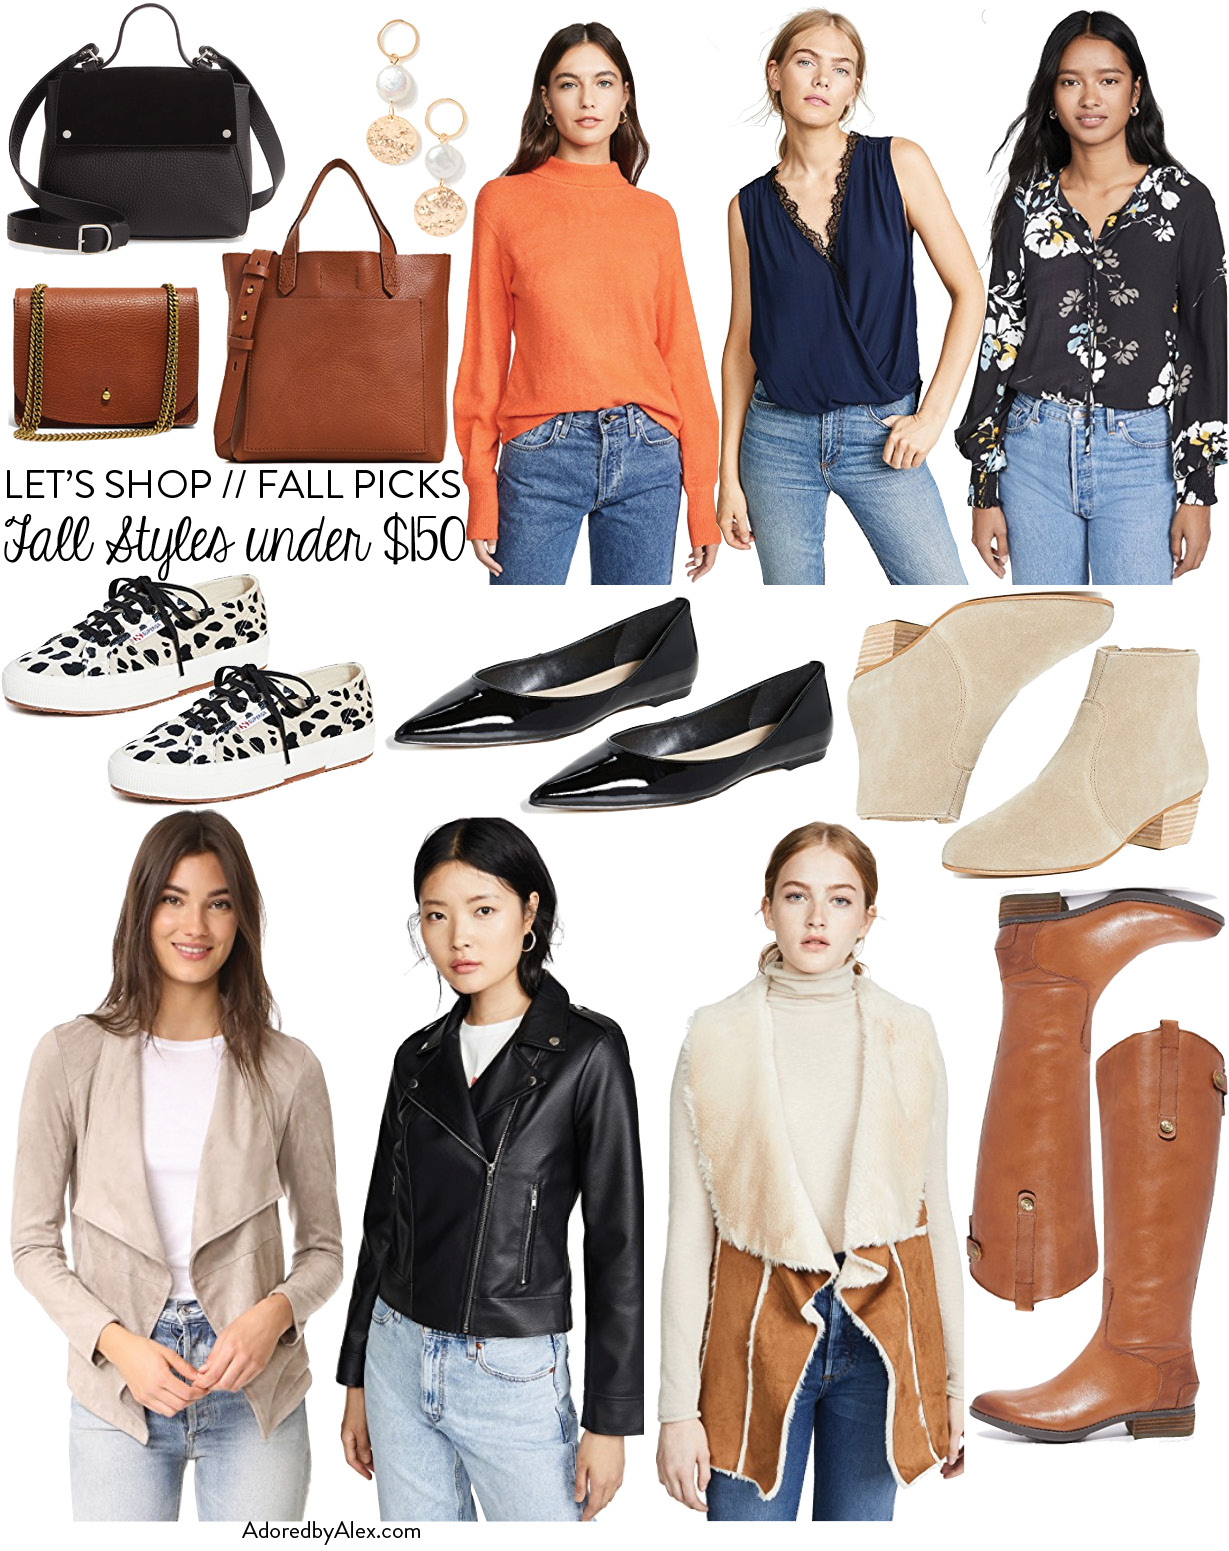 Fall style picks under $150 | Adored by Alex